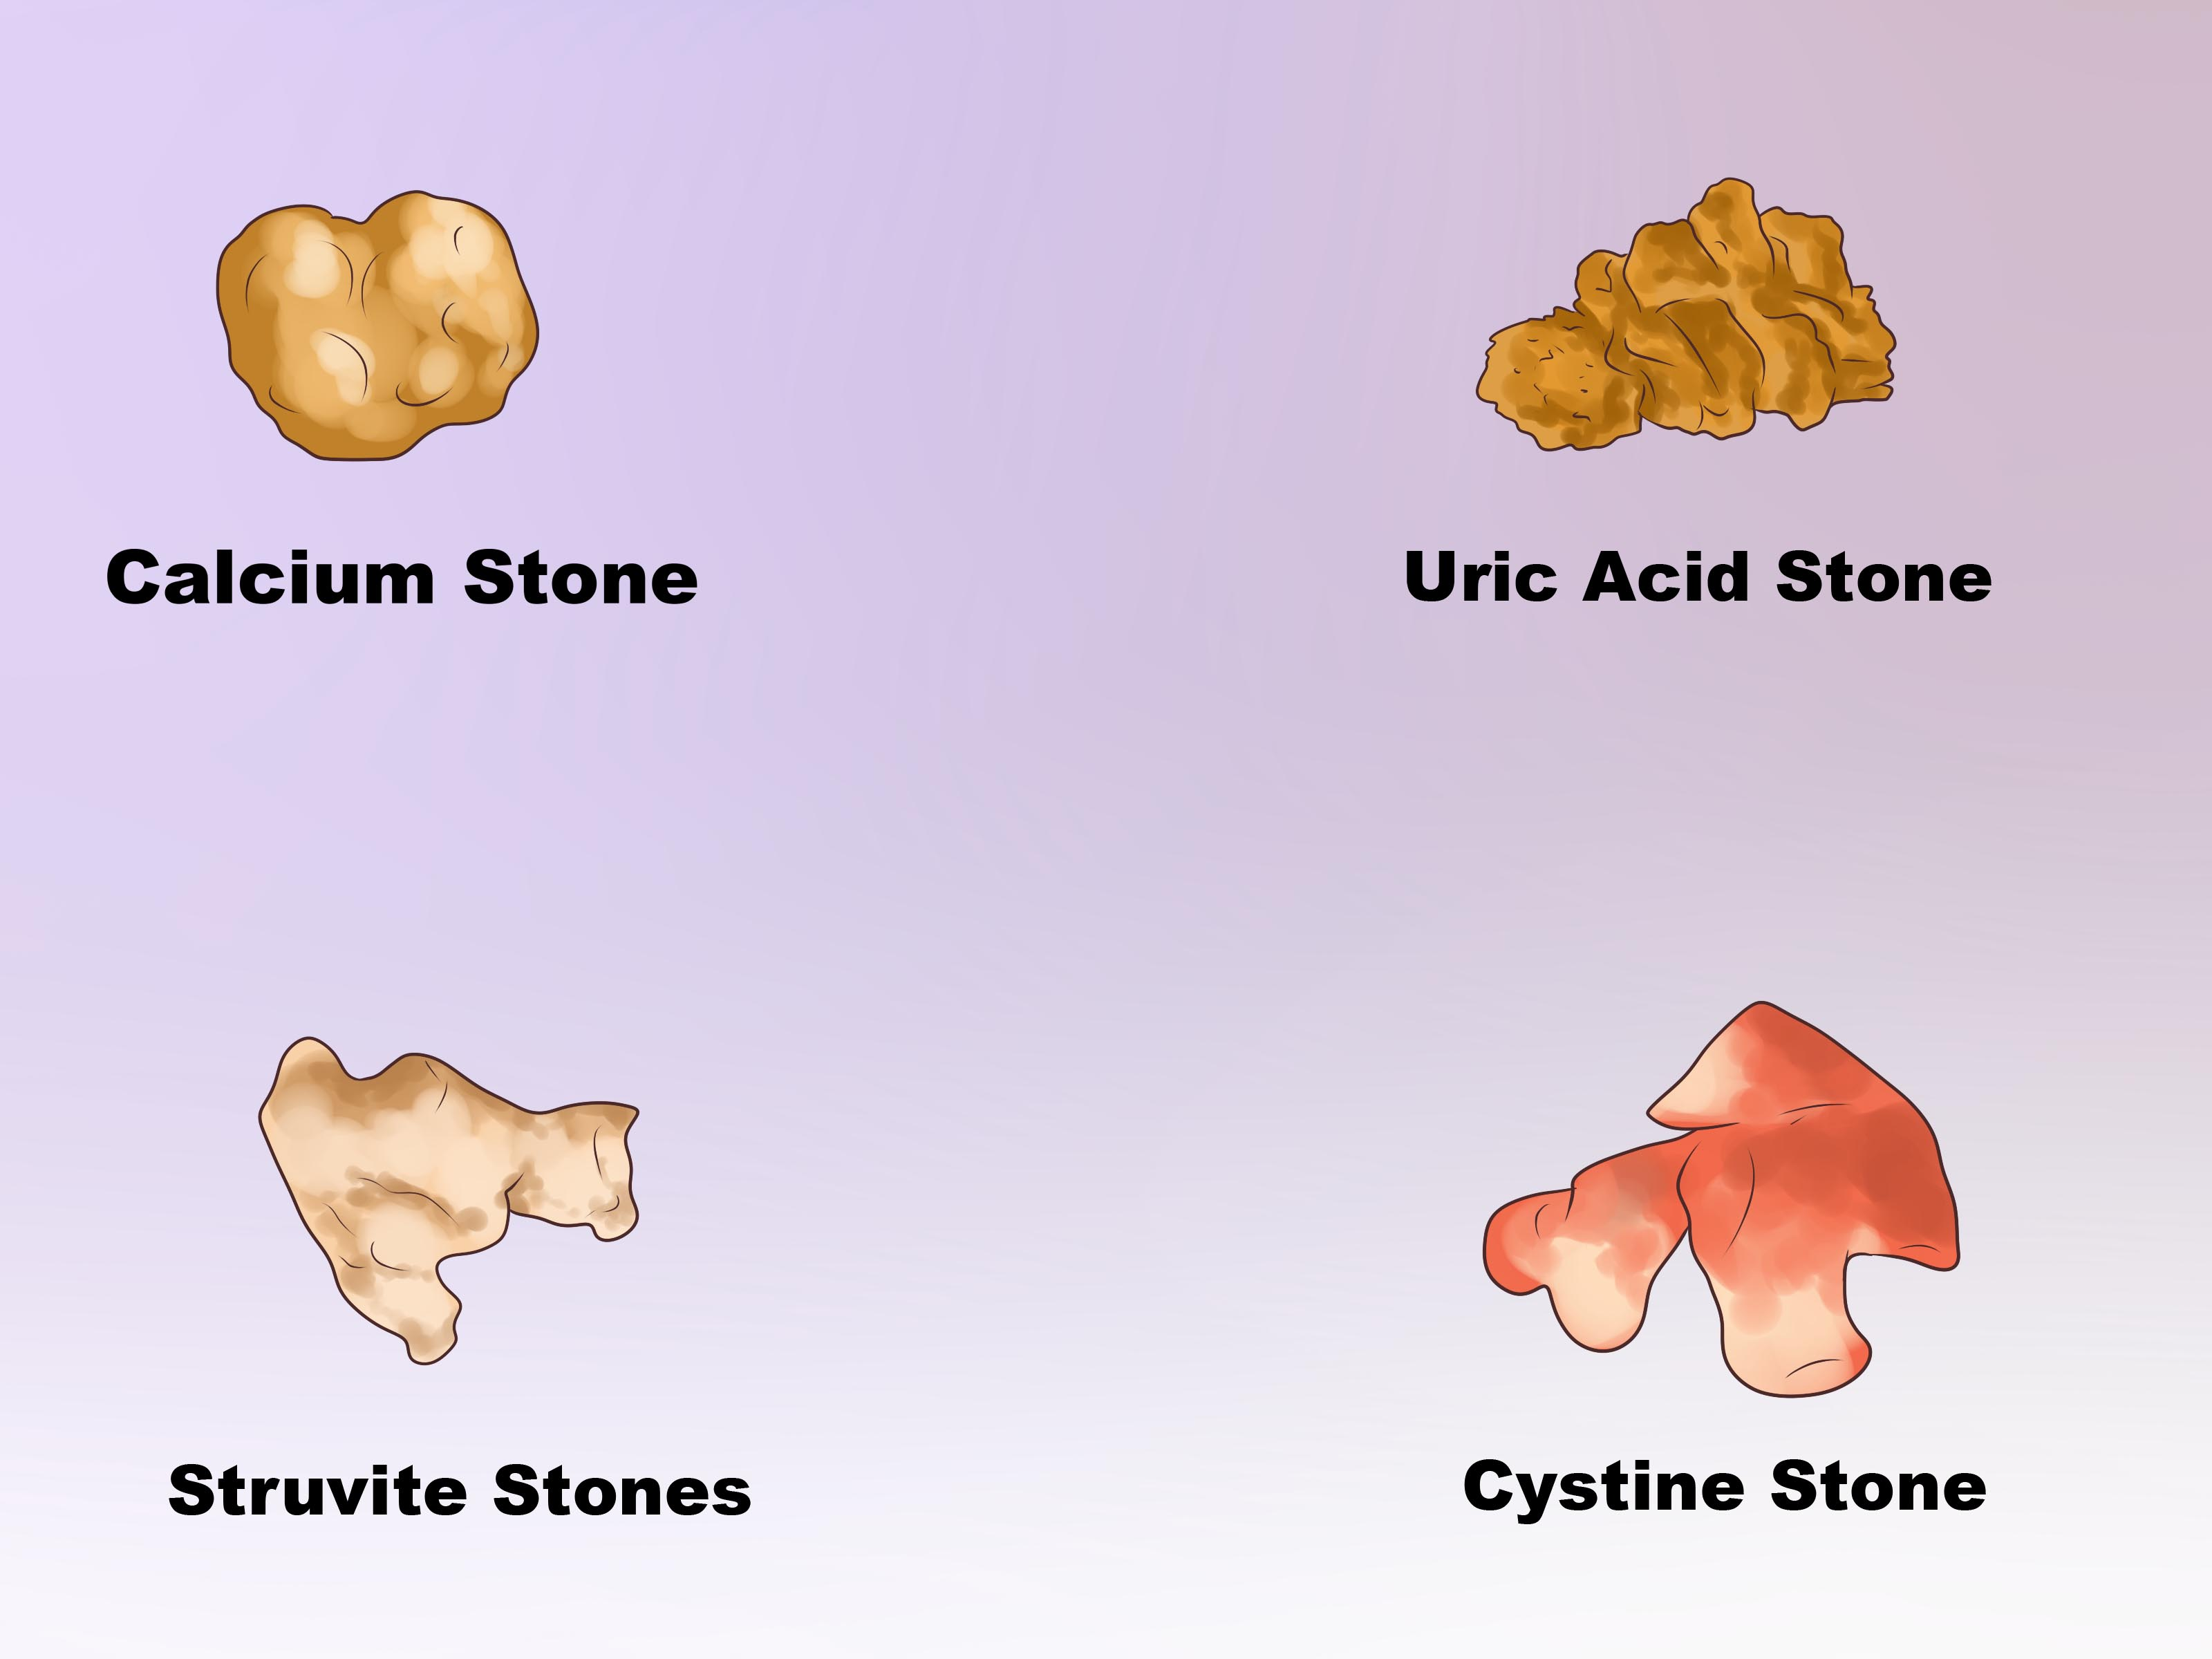 How To Dissolve Kidney Stones - Kidney Stones Formed (#1397176) - HD  Wallpaper & Backgrounds Download